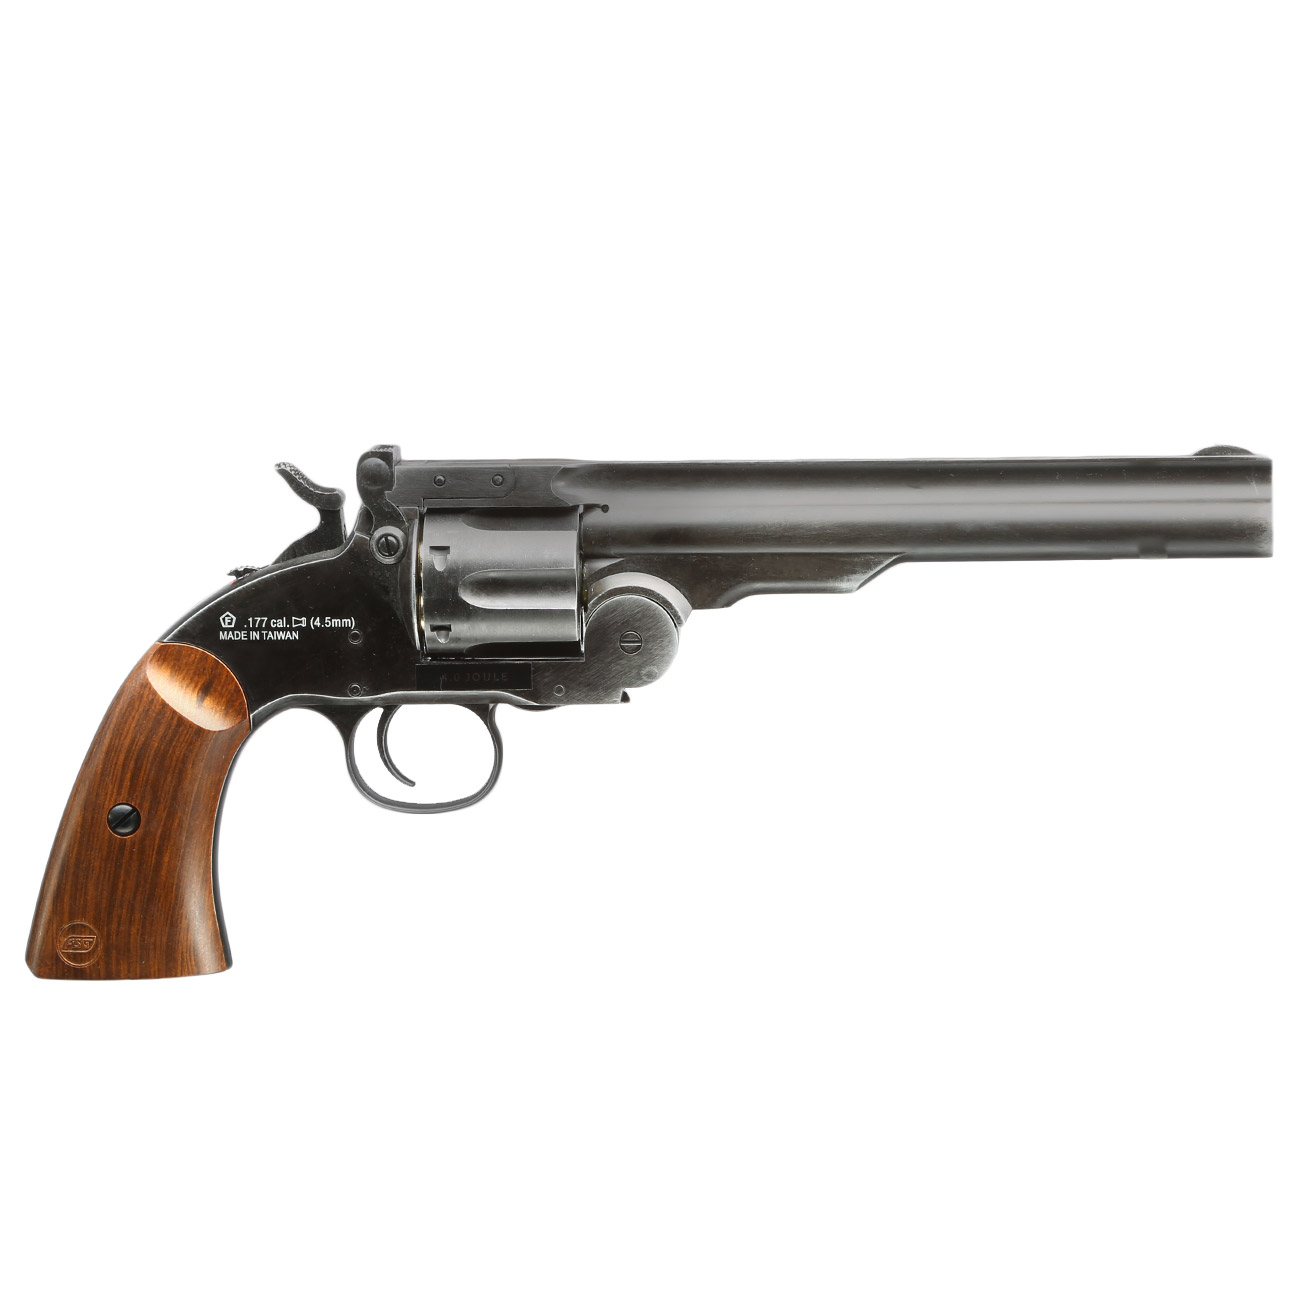 ASG Schofield 1877 6 Zoll CO2-Revolver Kal. 4,5 mm Diabolo + Stahl-BB Vollmetall aging black 4